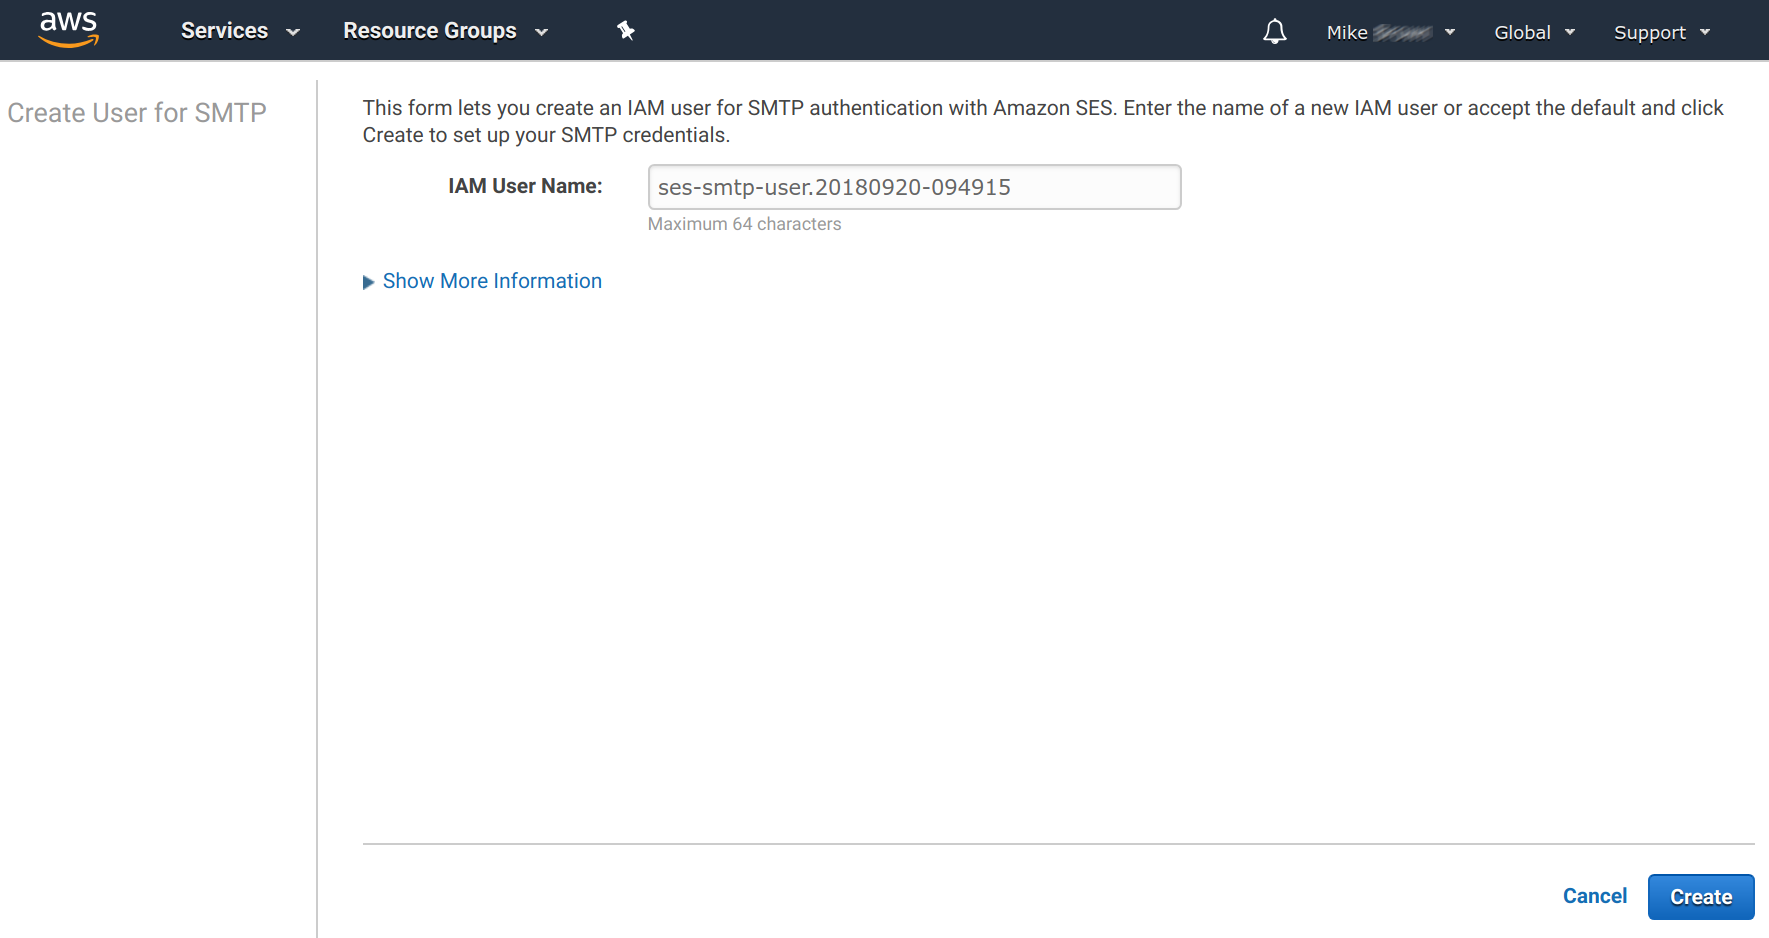 Amazon SES - Creating SMTP User